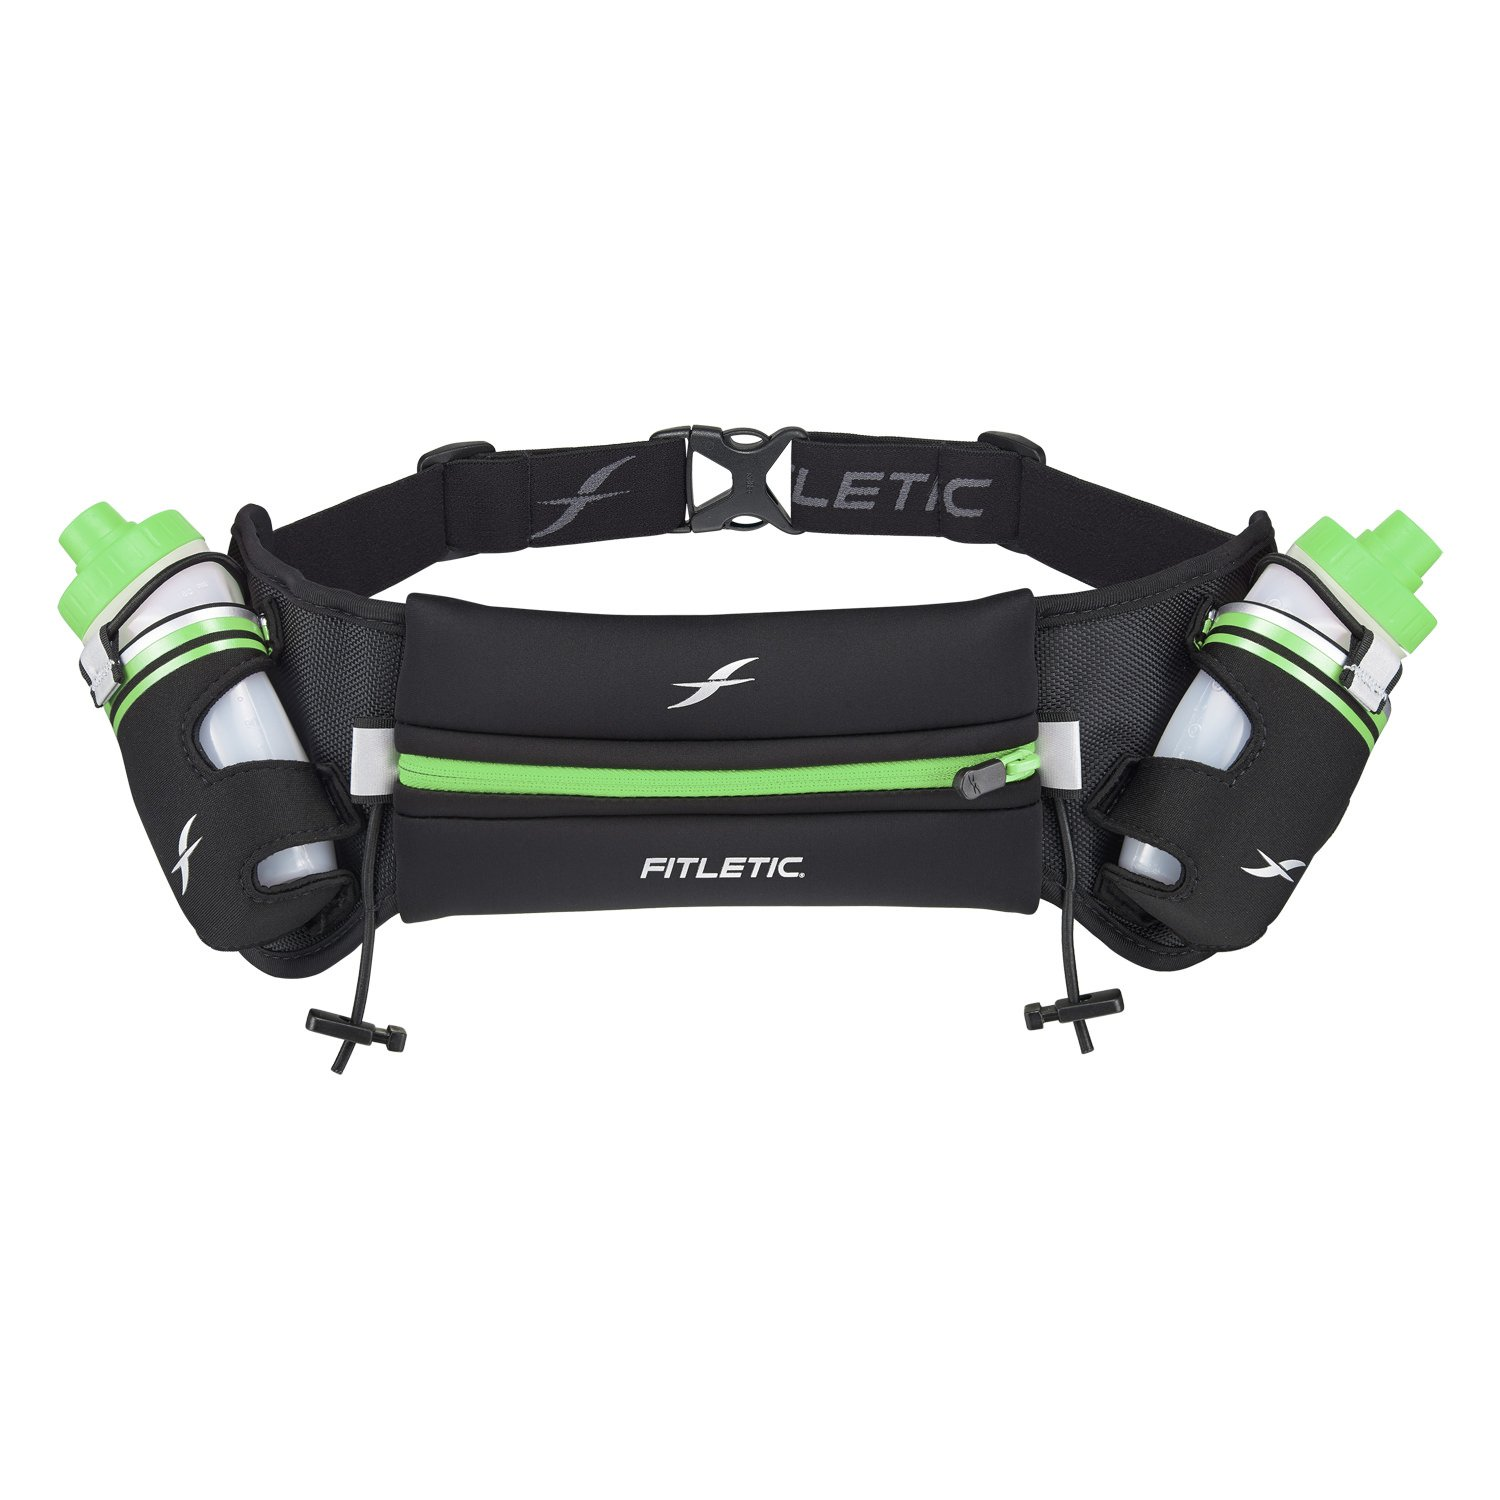 Fitletic Hydration Belt - HD08 Hydra 16 product image